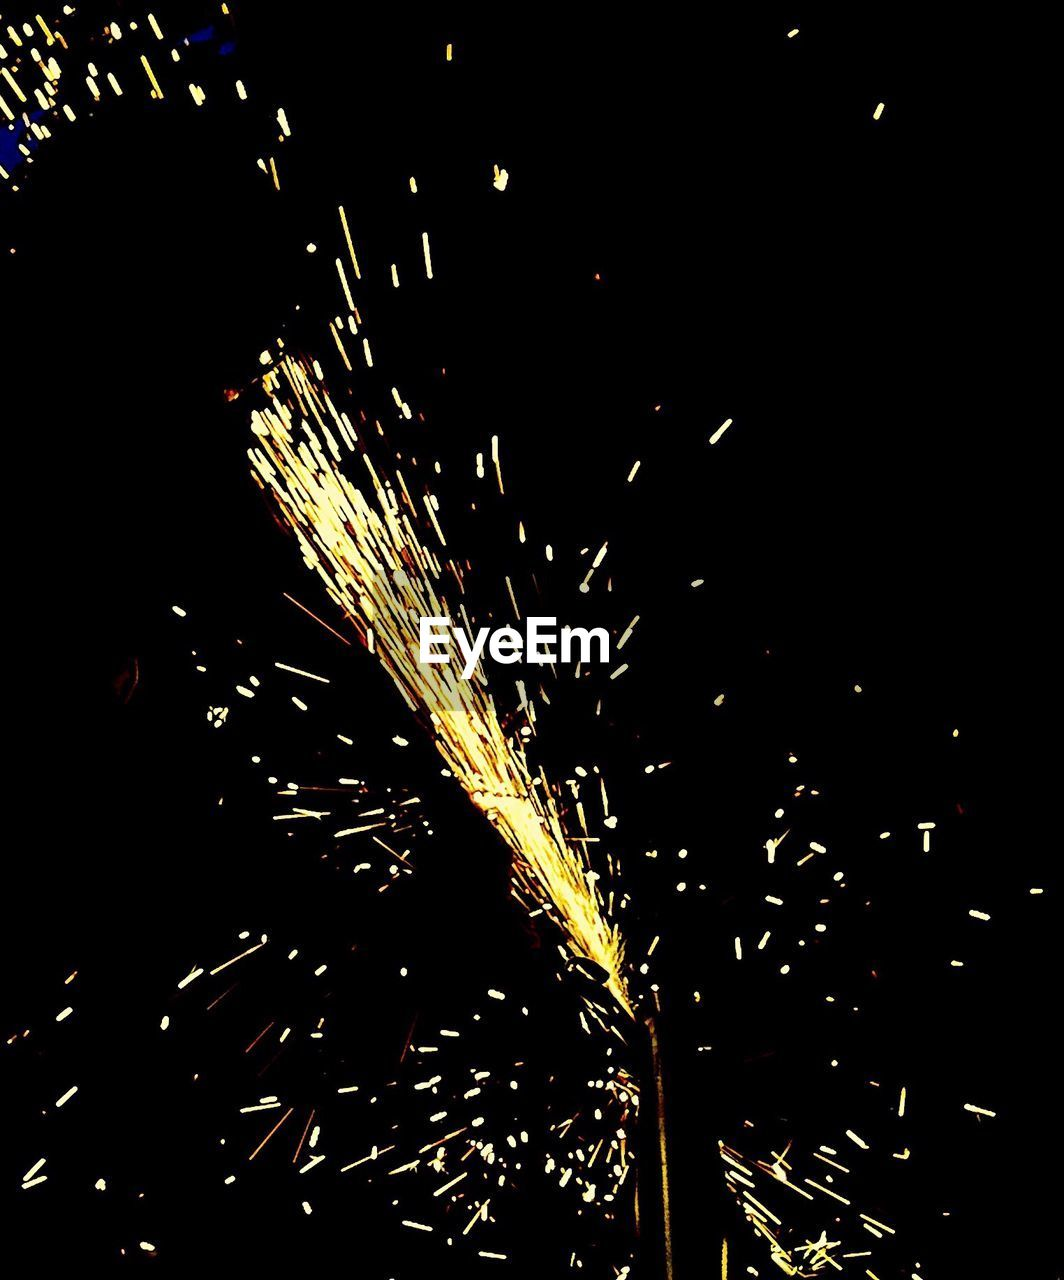 night, sparks, celebration, long exposure, firework - man made object, firework display, illuminated, exploding, motion, glowing, blurred motion, arts culture and entertainment, event, sparkler, firework, outdoors, real people, diwali, one person, sky, people